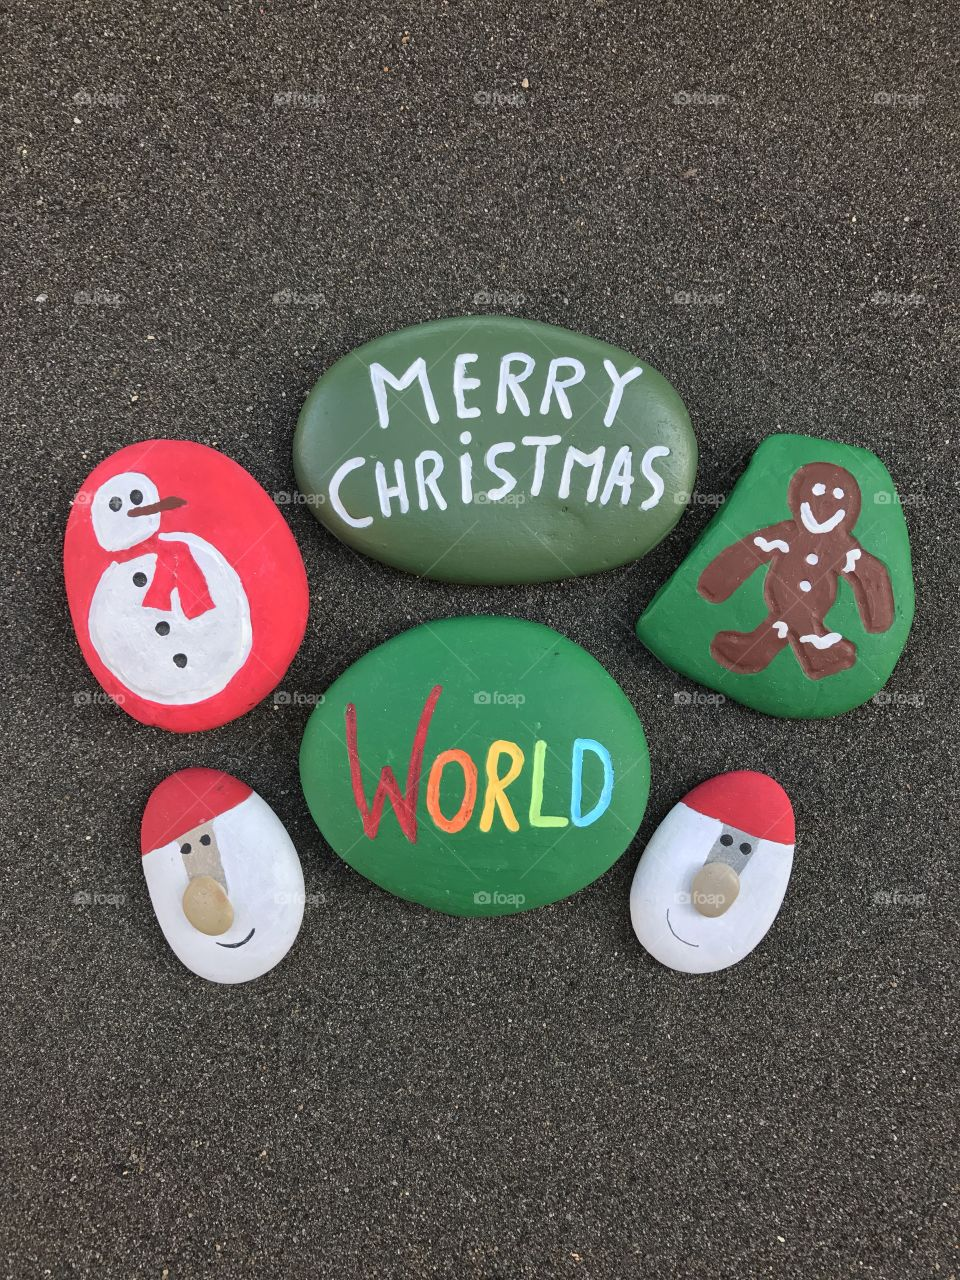 Merry Christmas World with stone design